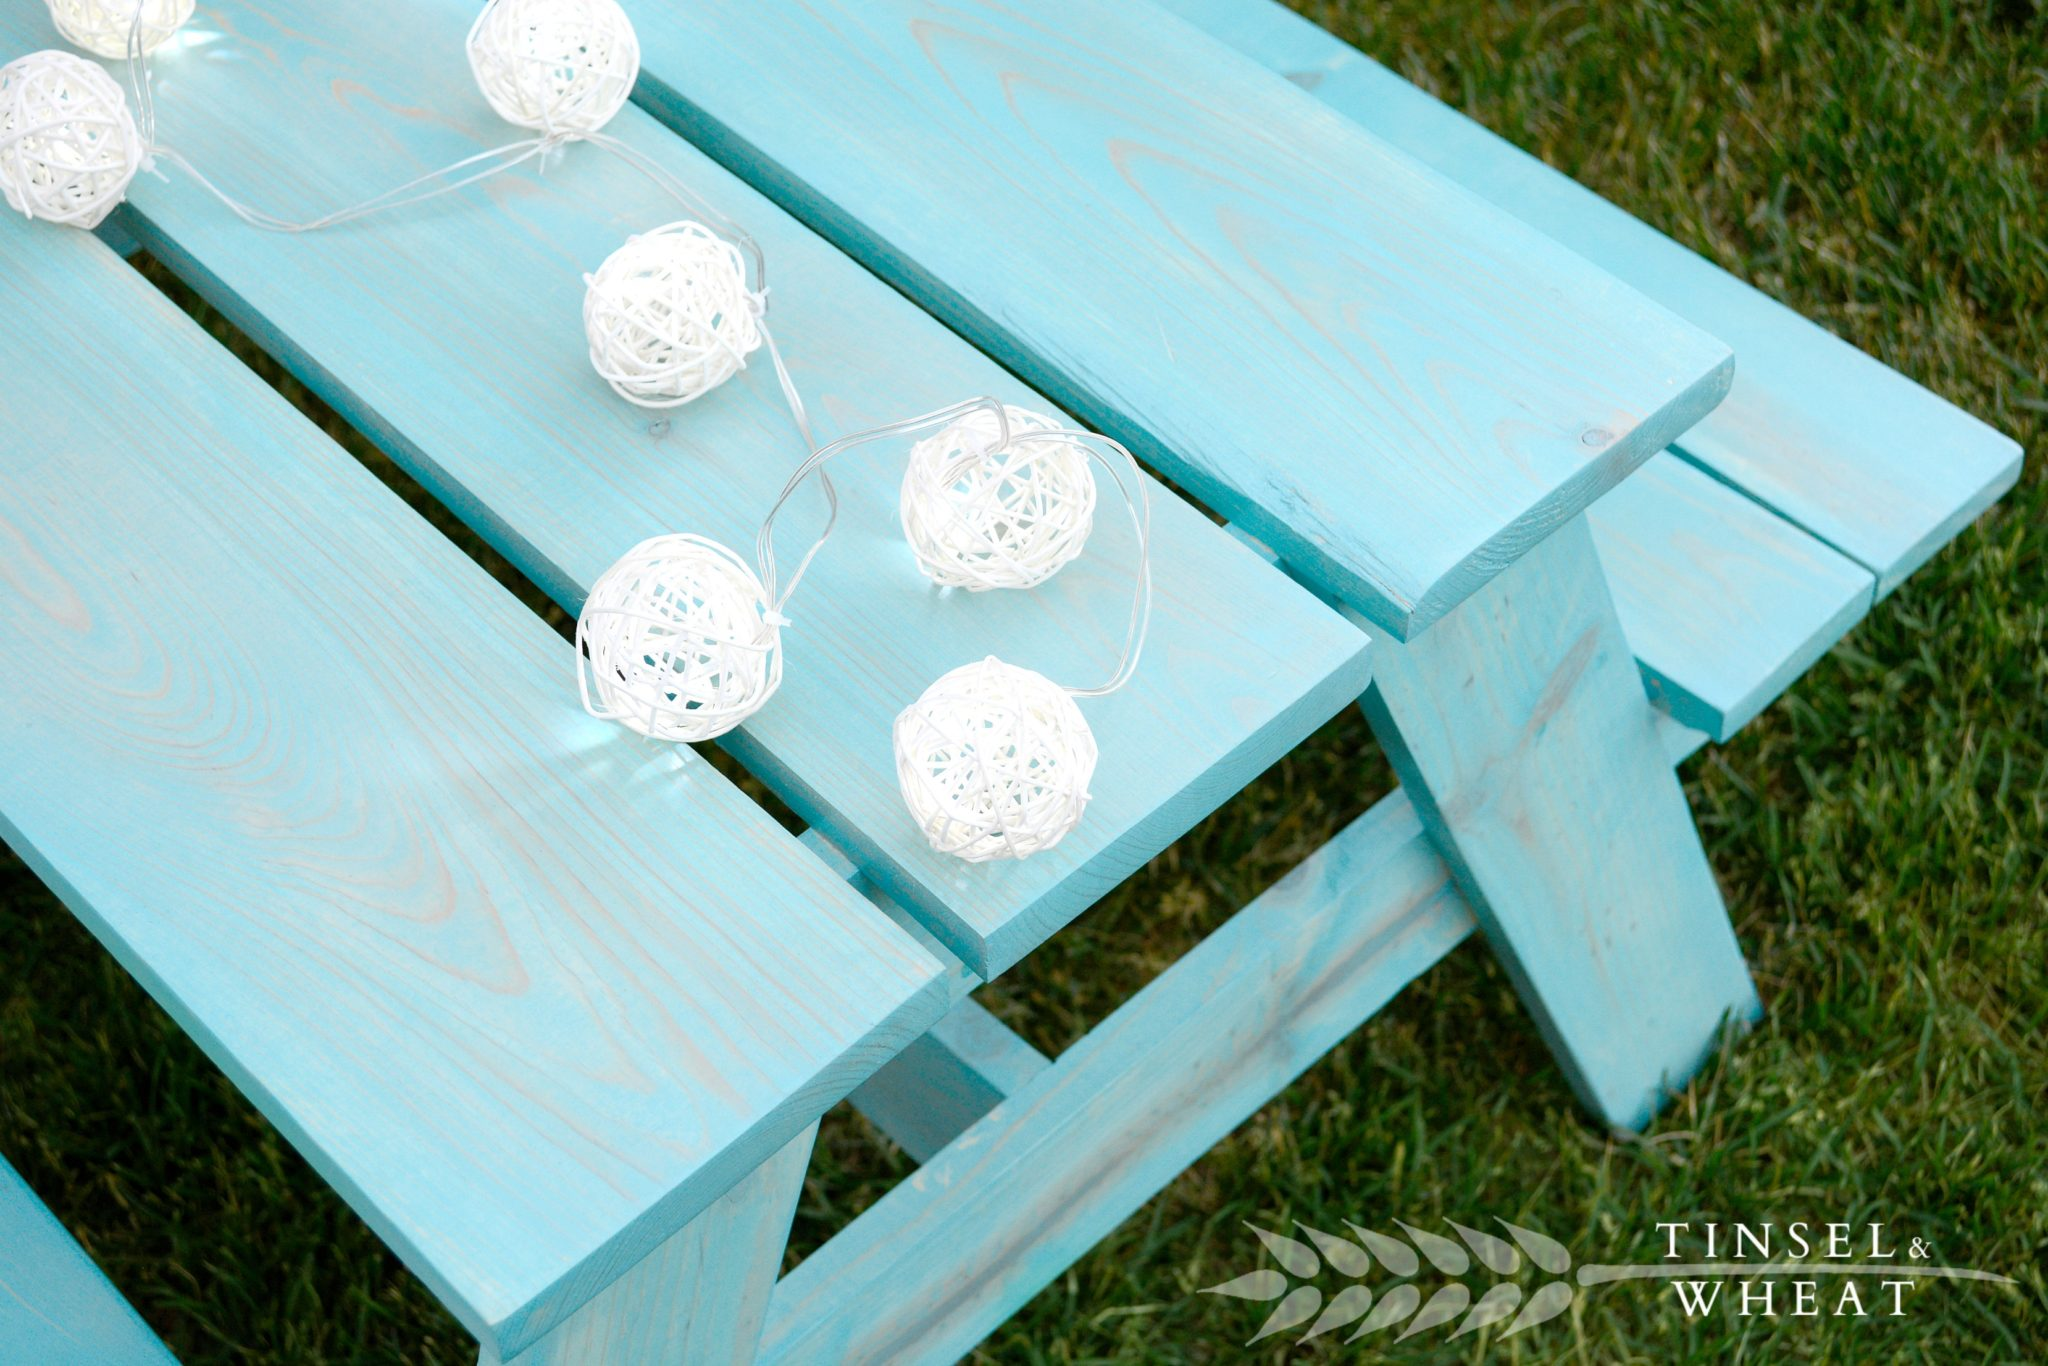 Light Blue Kids Picnic Table with Lights Laying on Top